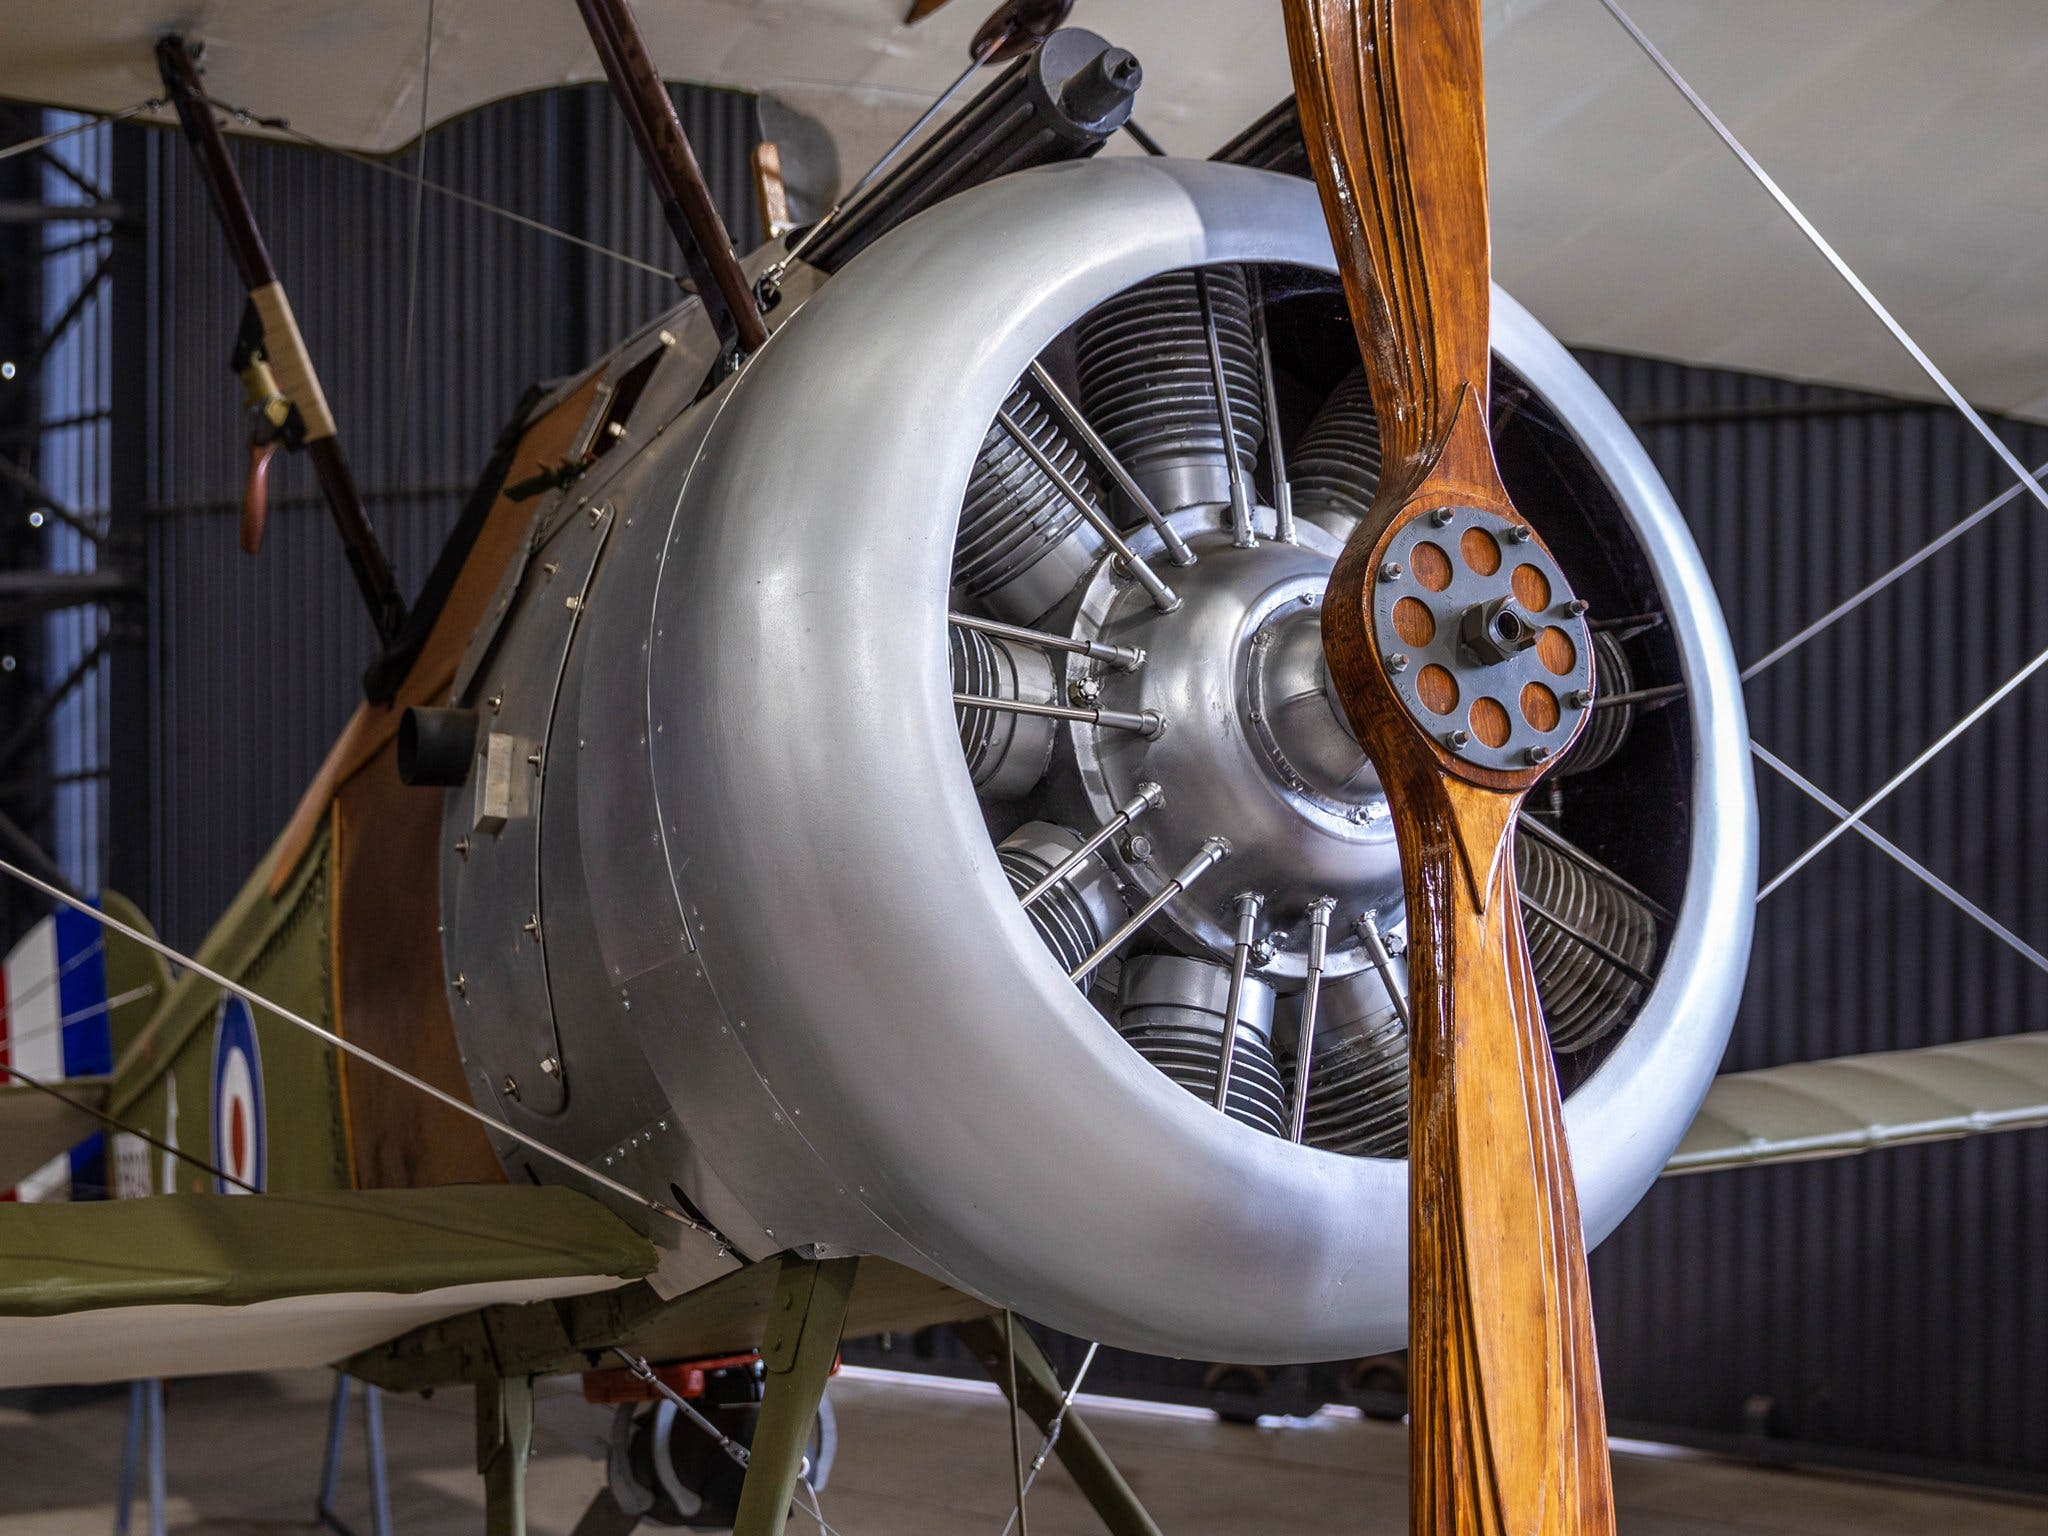 RAAF Amberley Aviation Heritage Centre - Accommodation Gold Coast